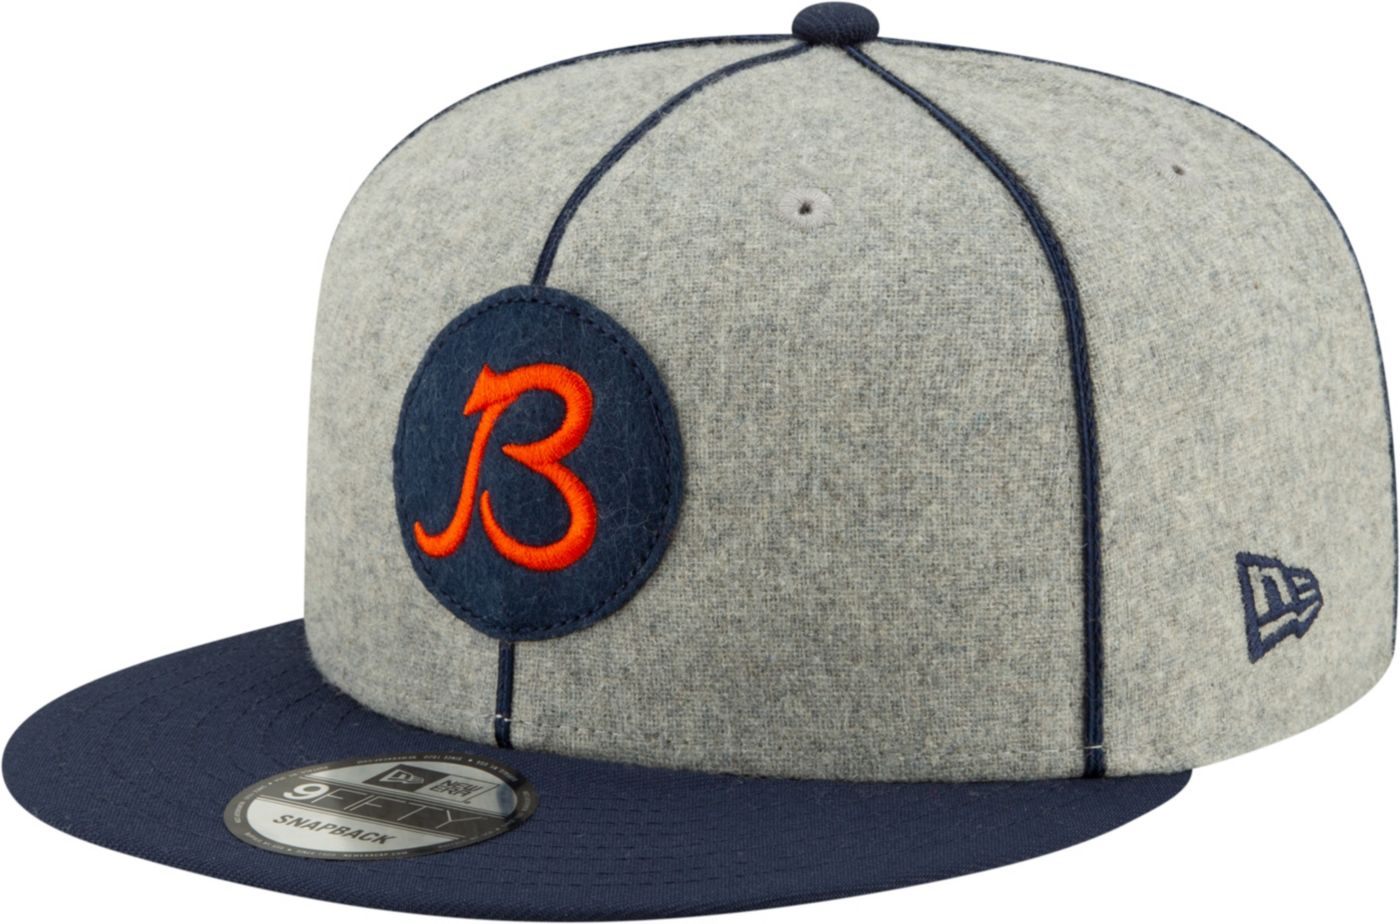 New Era Men's Chicago Bears Sideline Home 9Fifty Adjustable Hat